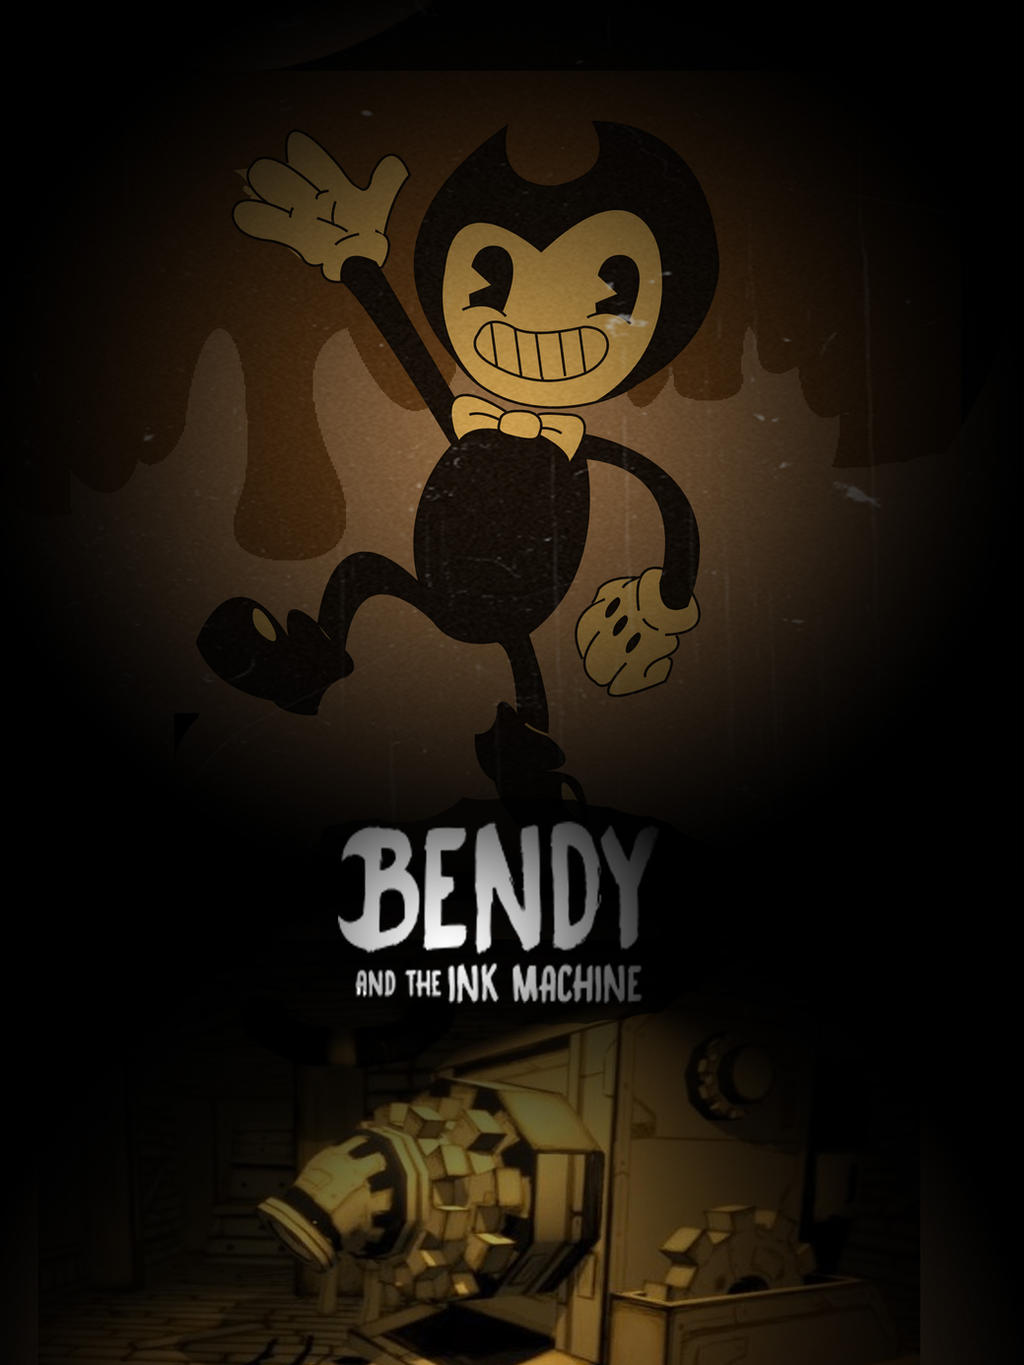 when is chapter 3 of bendy and the ink machine coming out